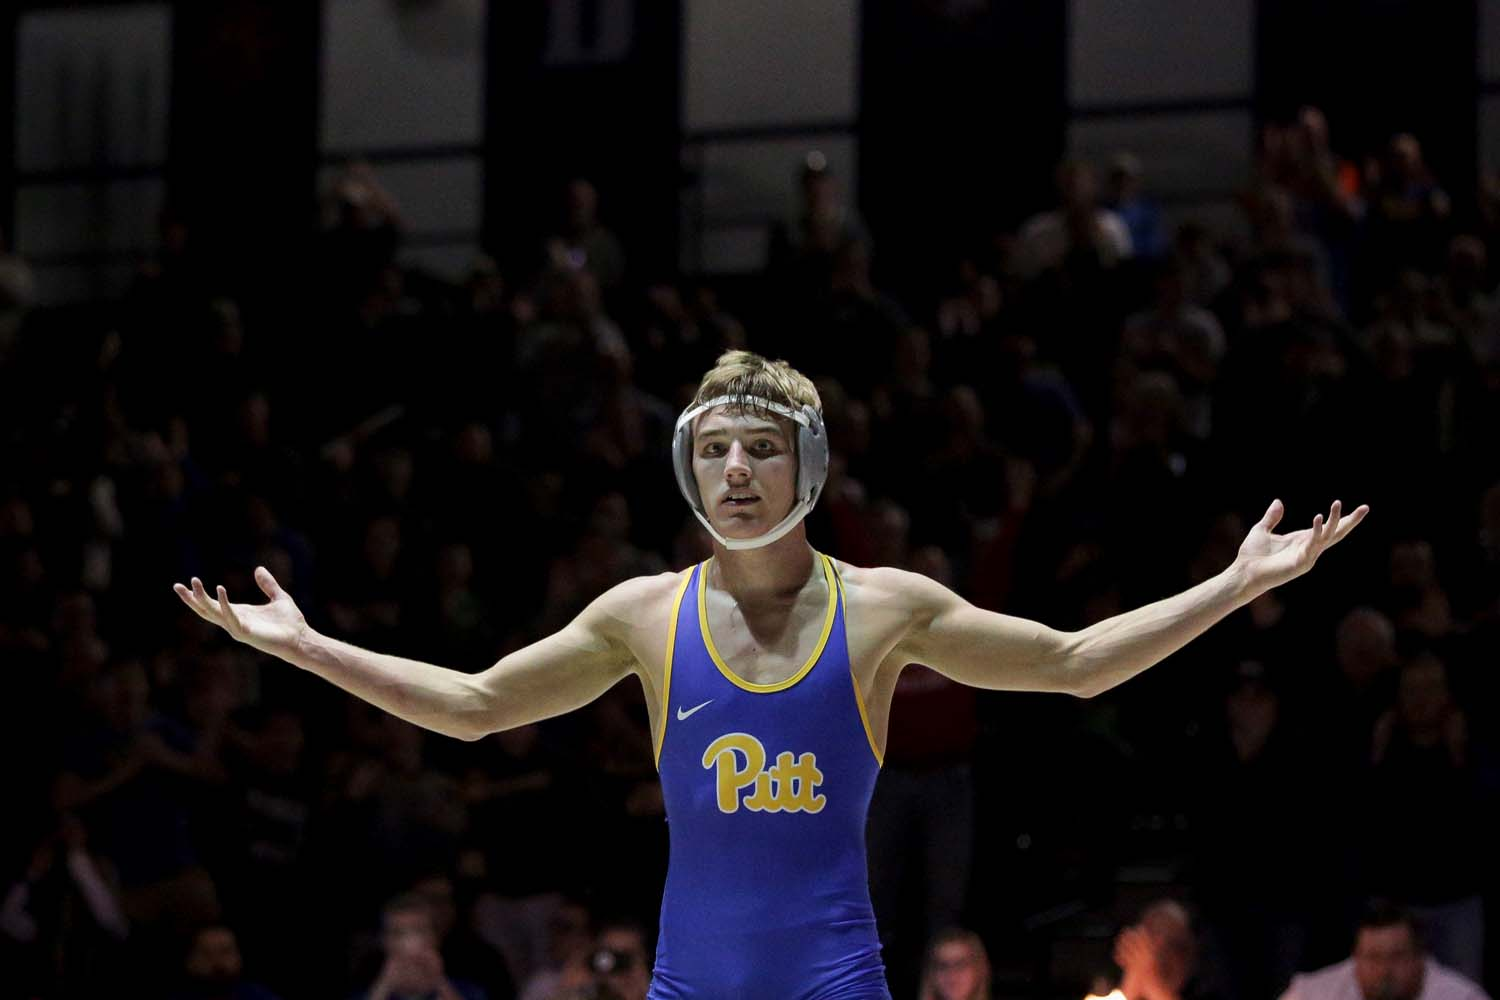 Redshirt sophomore Micky Phillippi is currently ranked No. 4 133-pounder in the nation.